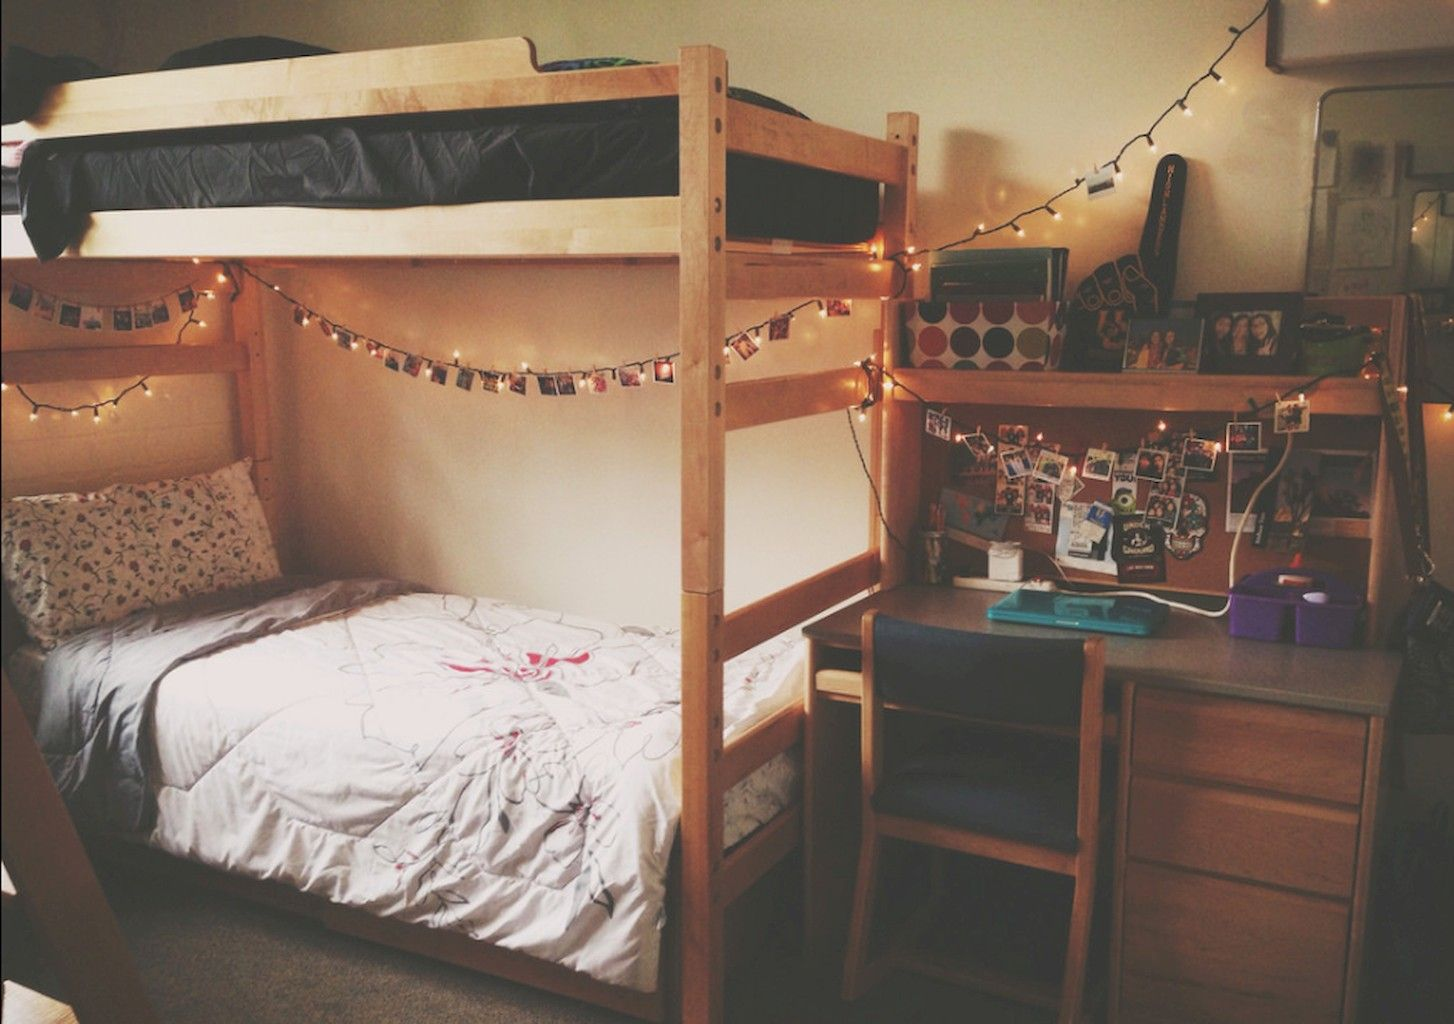 69+ Best DIY Dorm Room Storage and Decoration Ideas on A Budget images